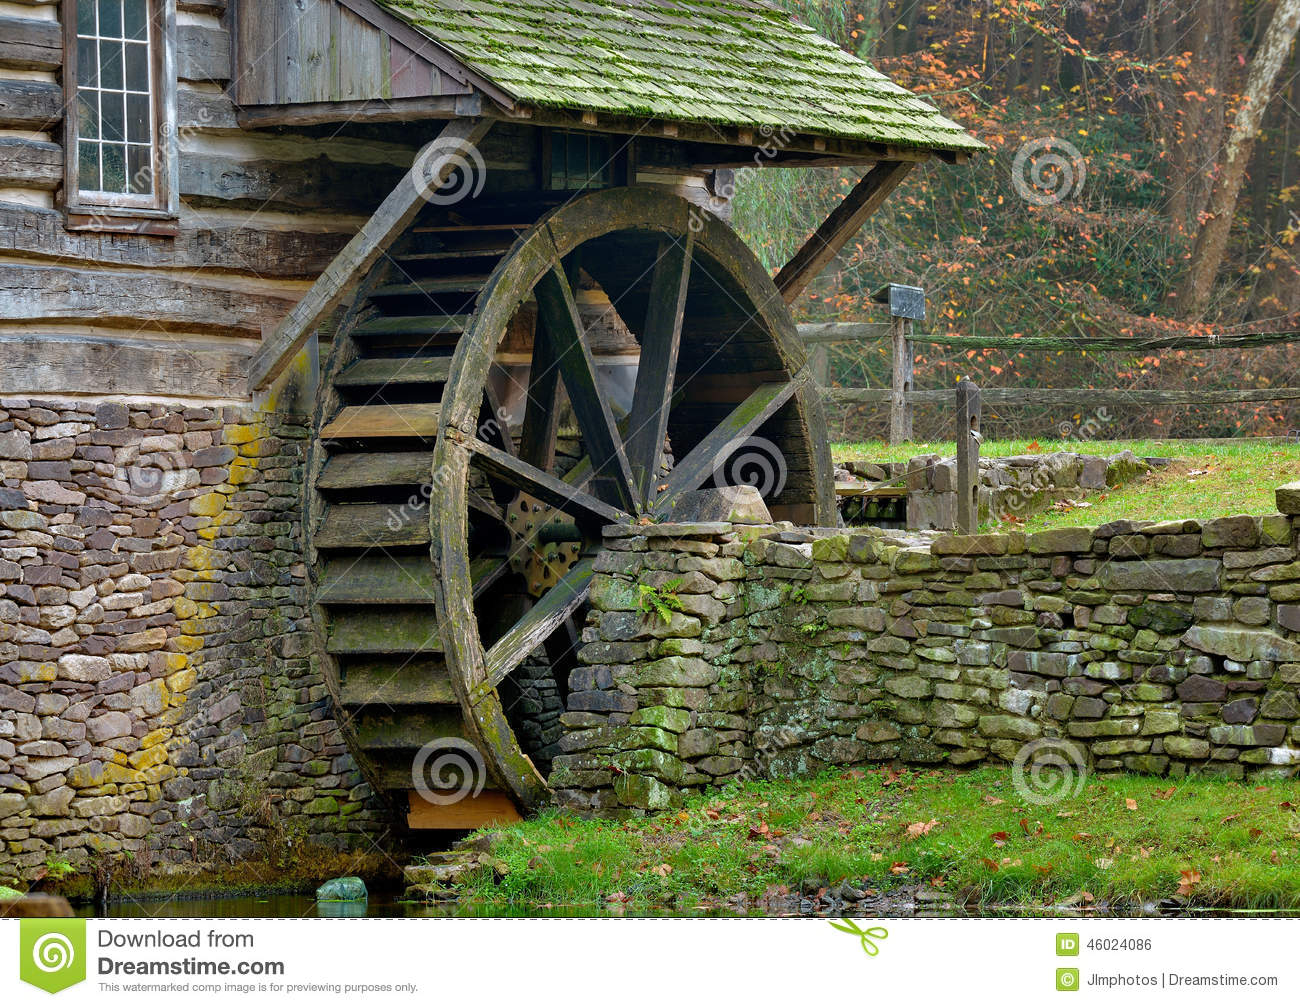 Marble Water Wheels : Moss covered water wheel and stone retaining wall of a